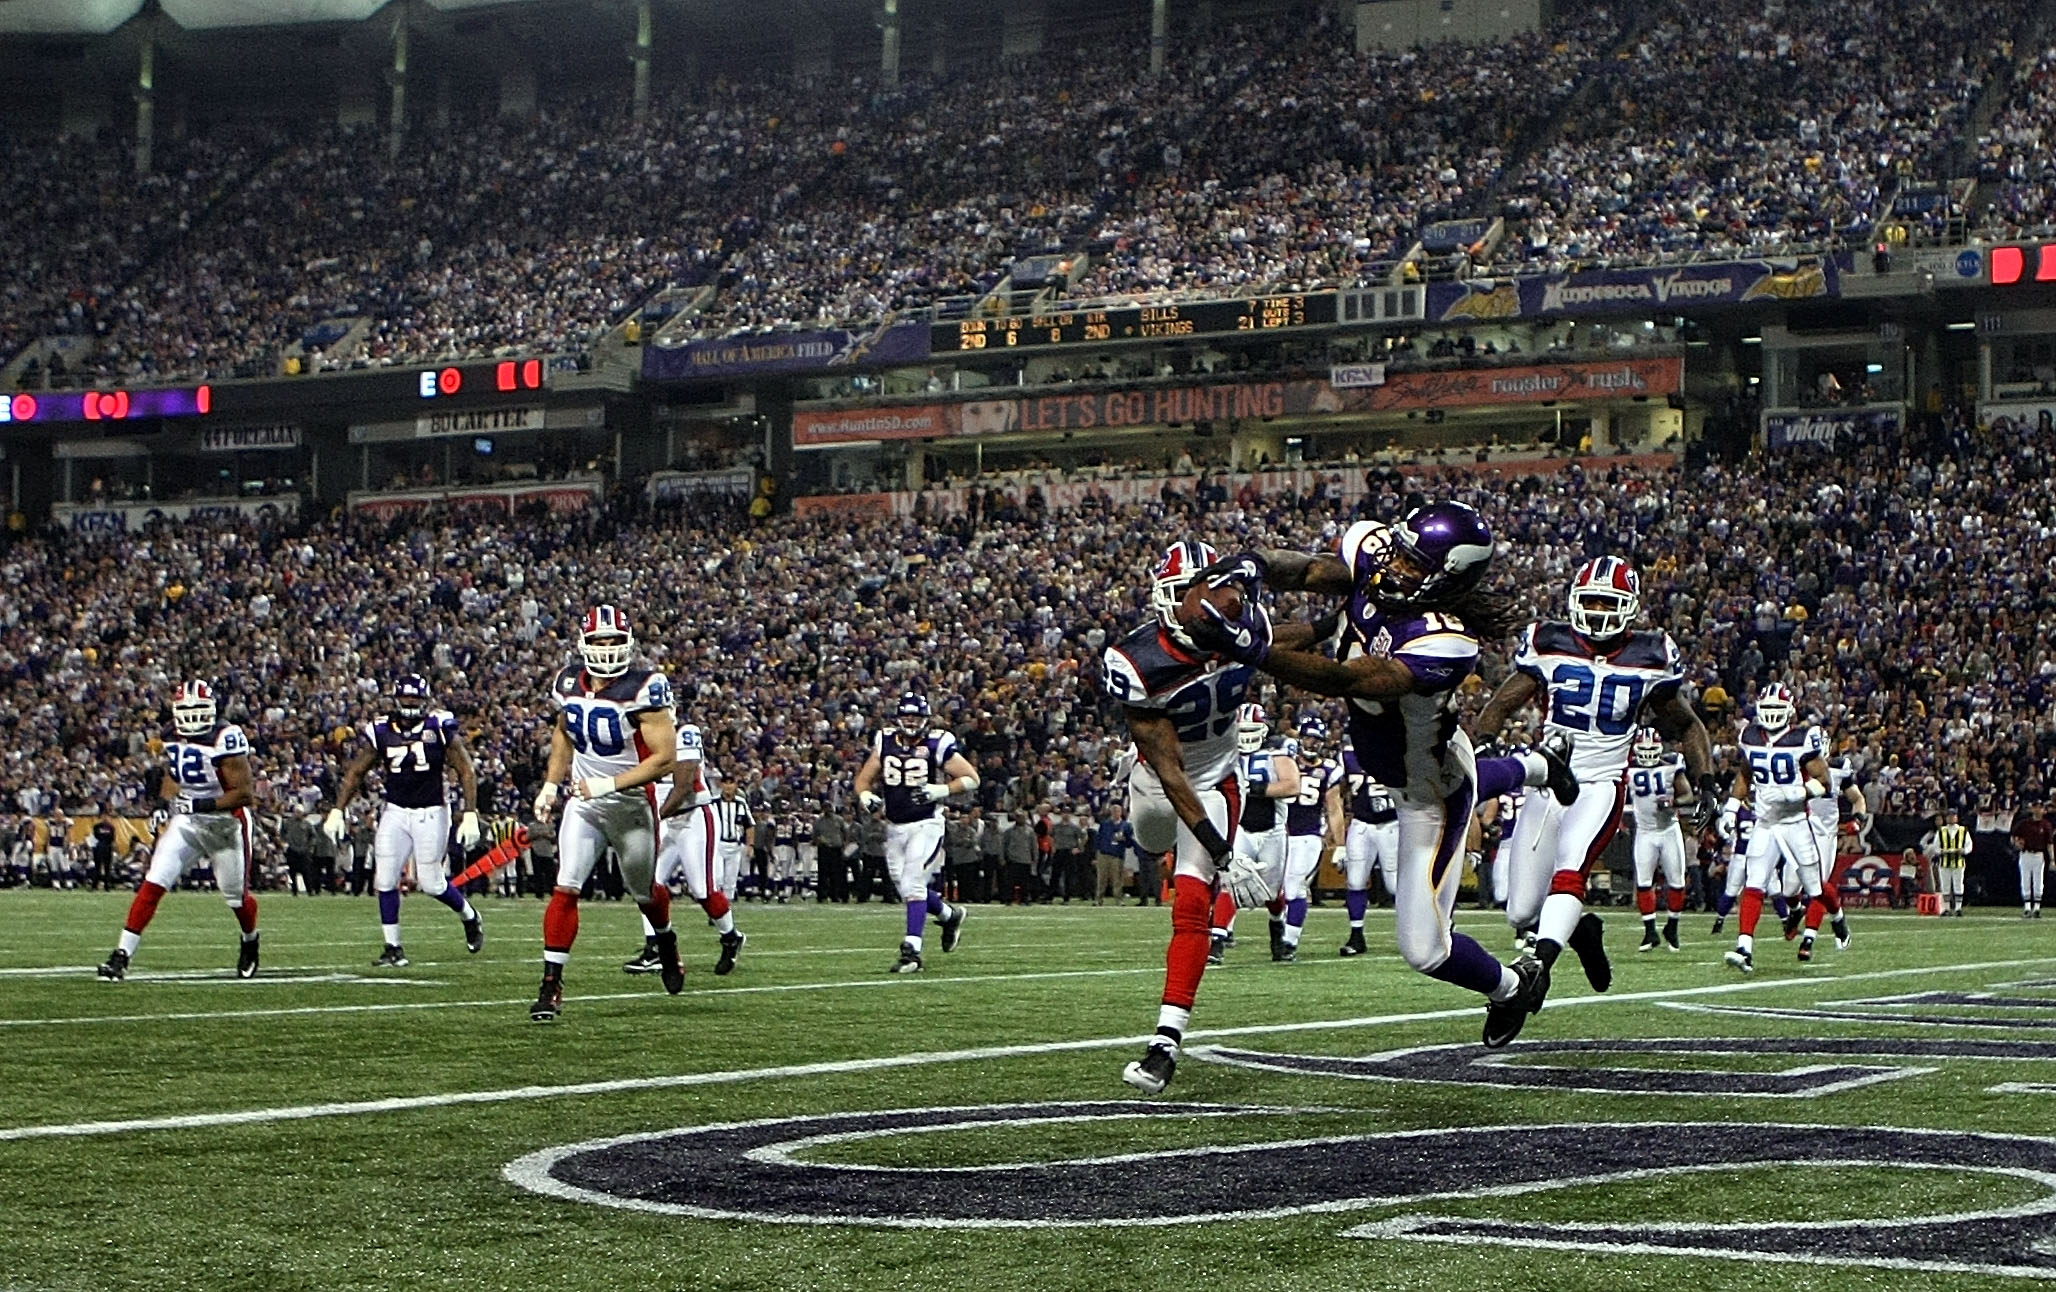 MINNEAPOLIS, MN - DECEMBER 05: Sidney Rice #18 of the Minnesota Vikings catches a touchdown against the Buffalo Bills at the Mall of America Field at the Hubert H. Humphrey Metrodome on December 5, 2010 in Minneapolis, Minnesota.  (Photo by Nick Laham/Get